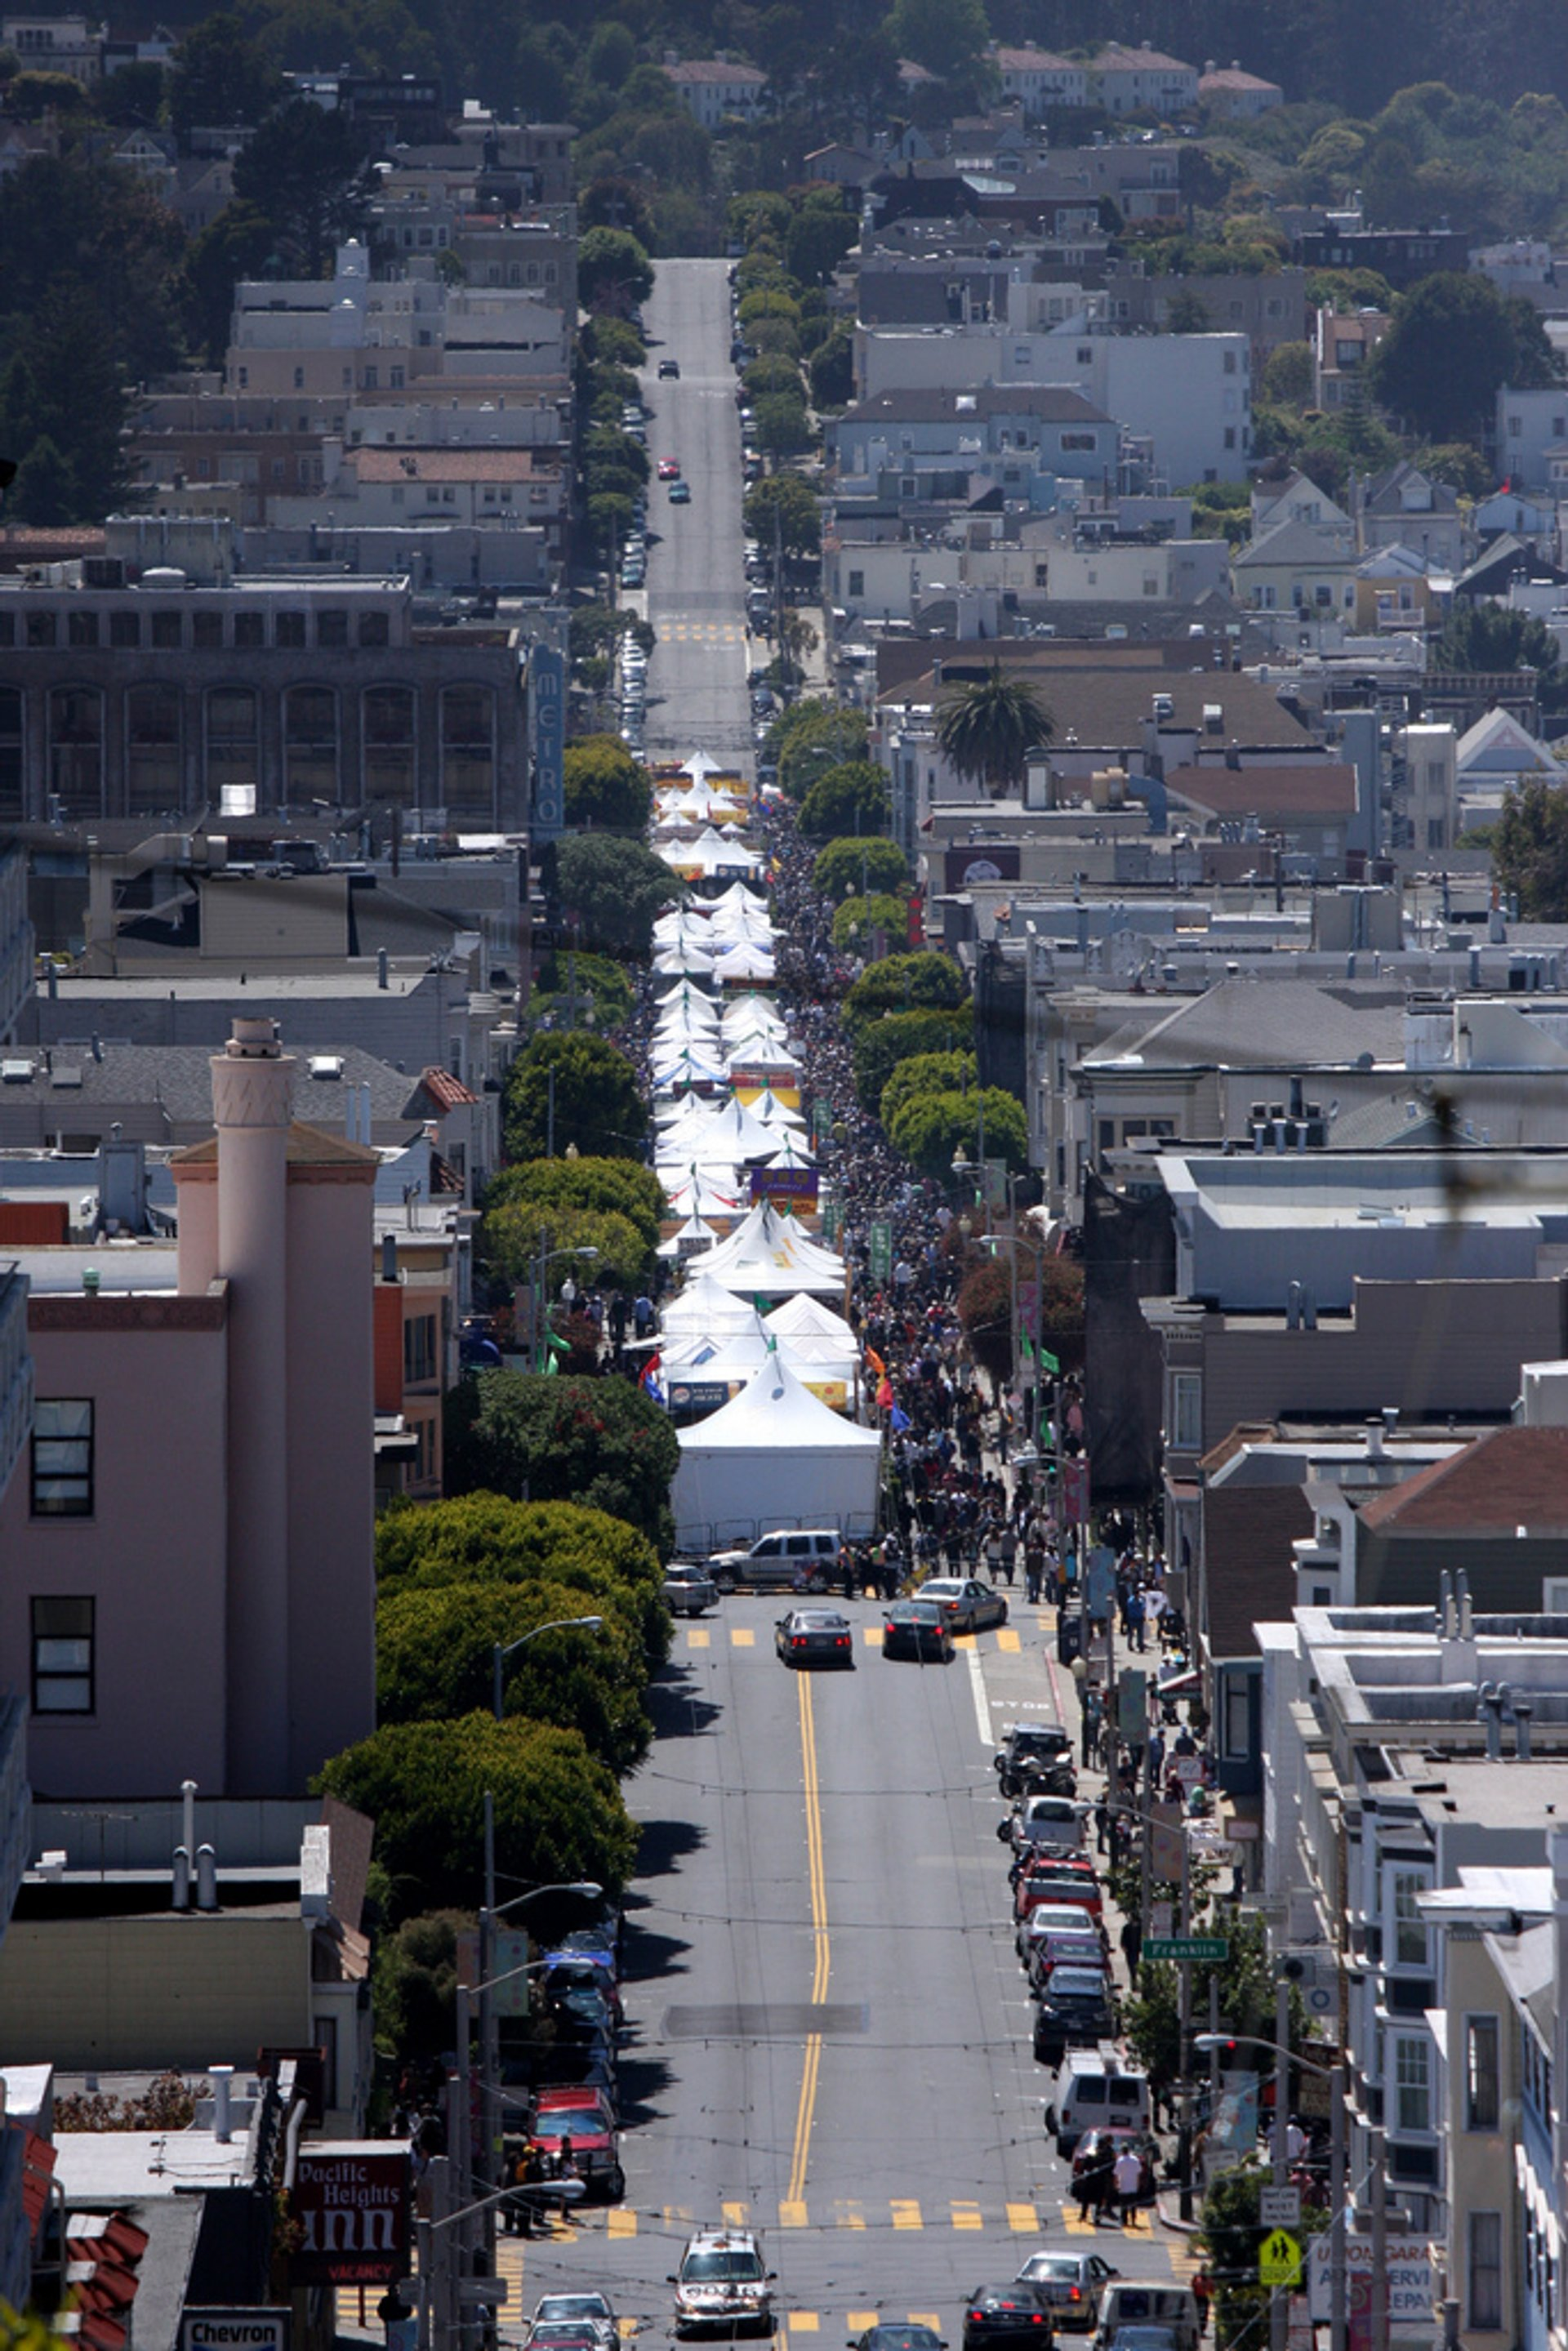 Union Street Festival in San Francisco - Best Season 2020